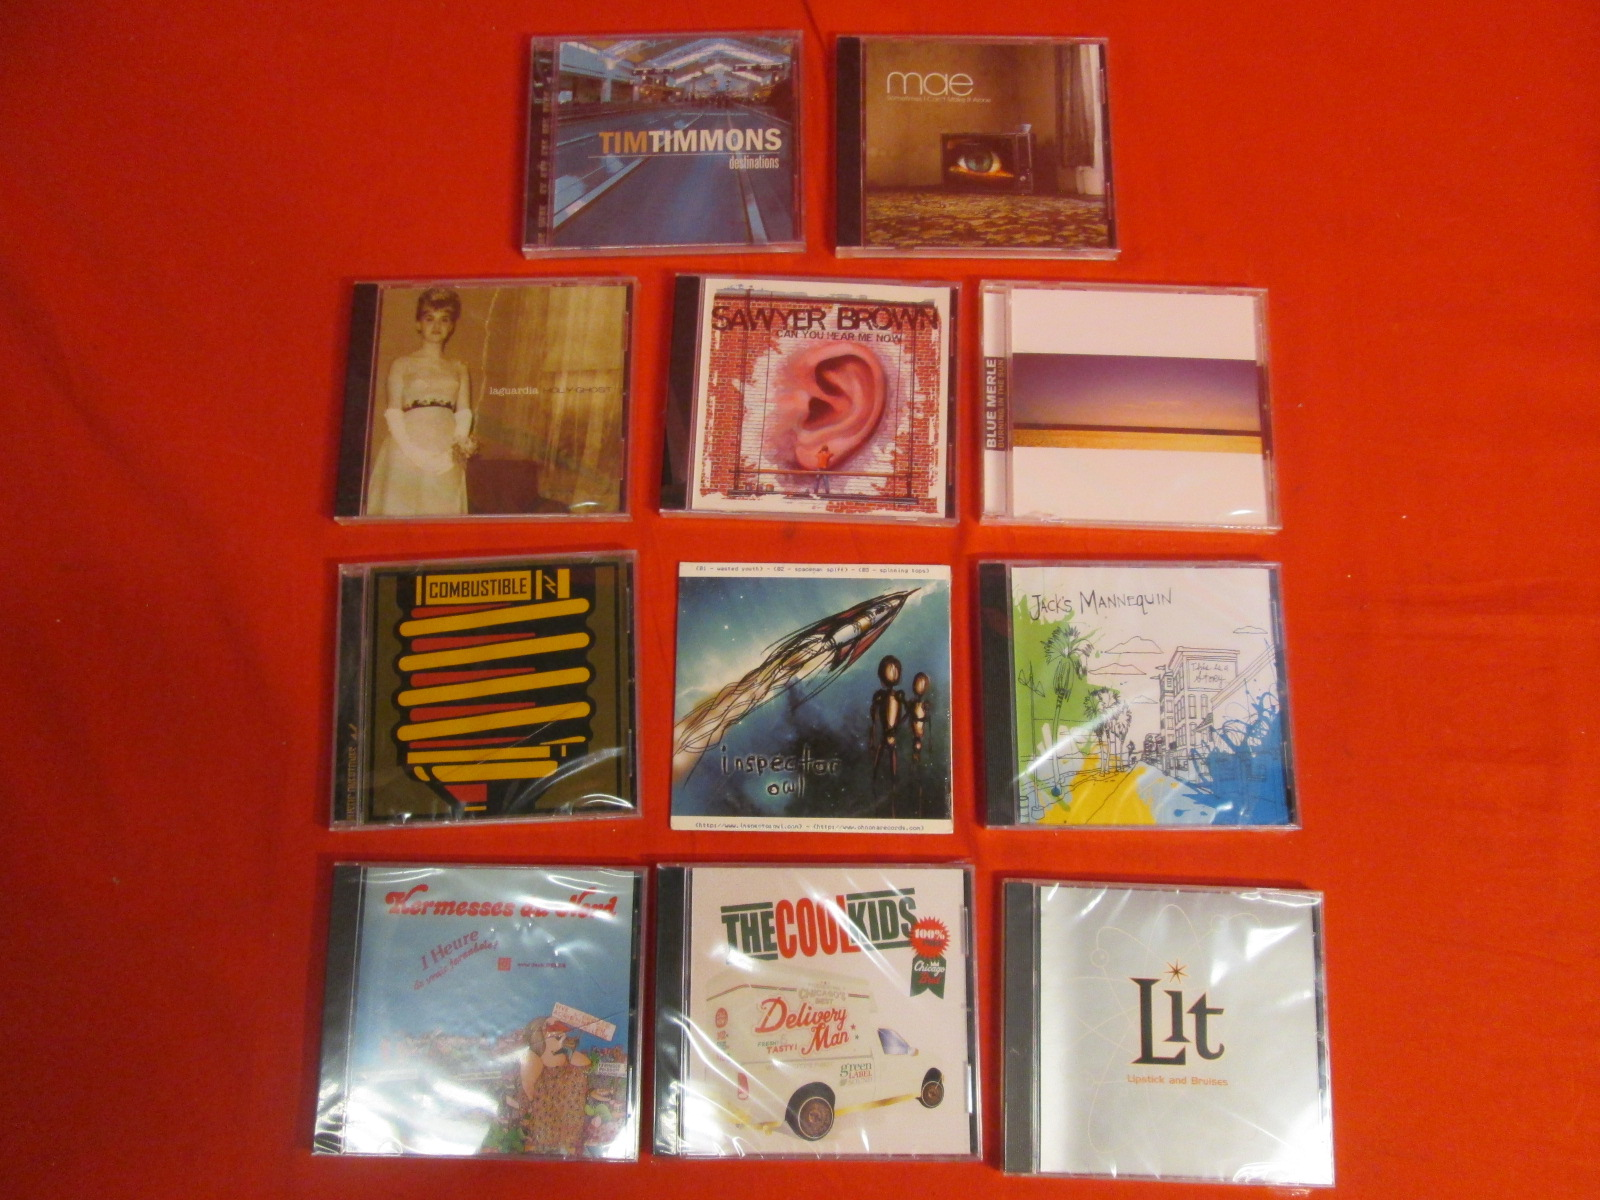 Lot Of 10 Audio Music CDs On Audio CD